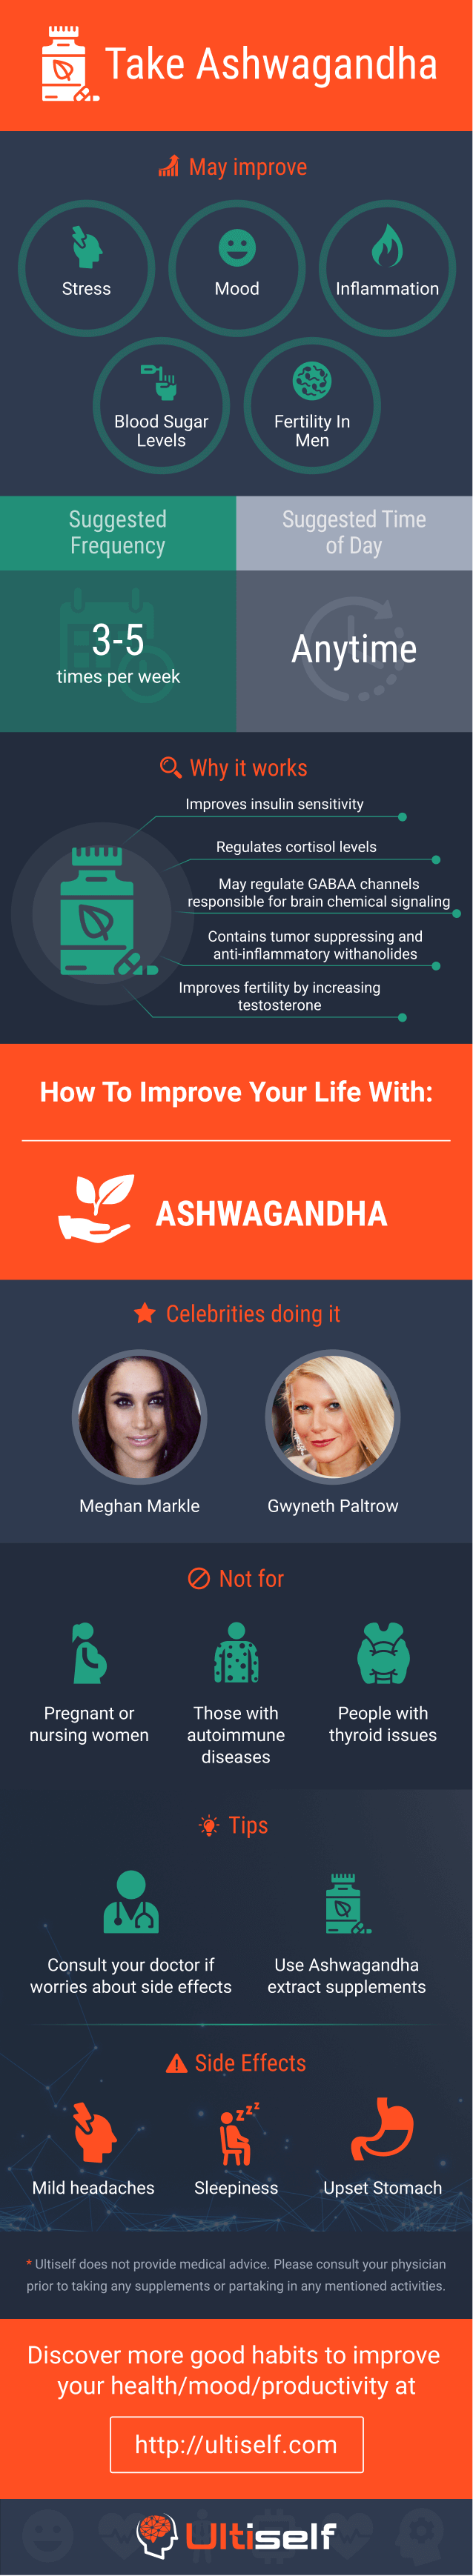 Take ashwagandha infographic